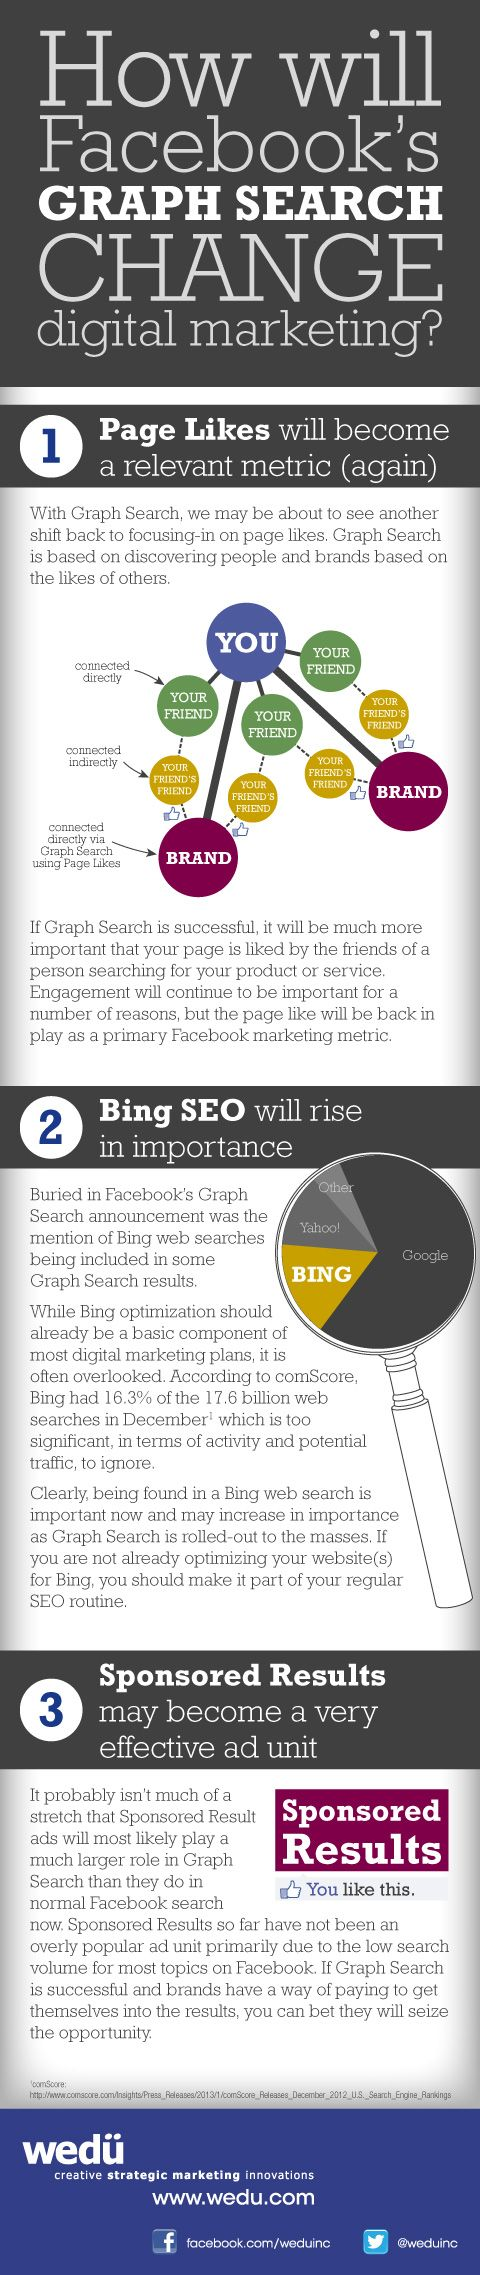 [infographic] How Will #Facebook 's Graph Search Change Digital Marketing?